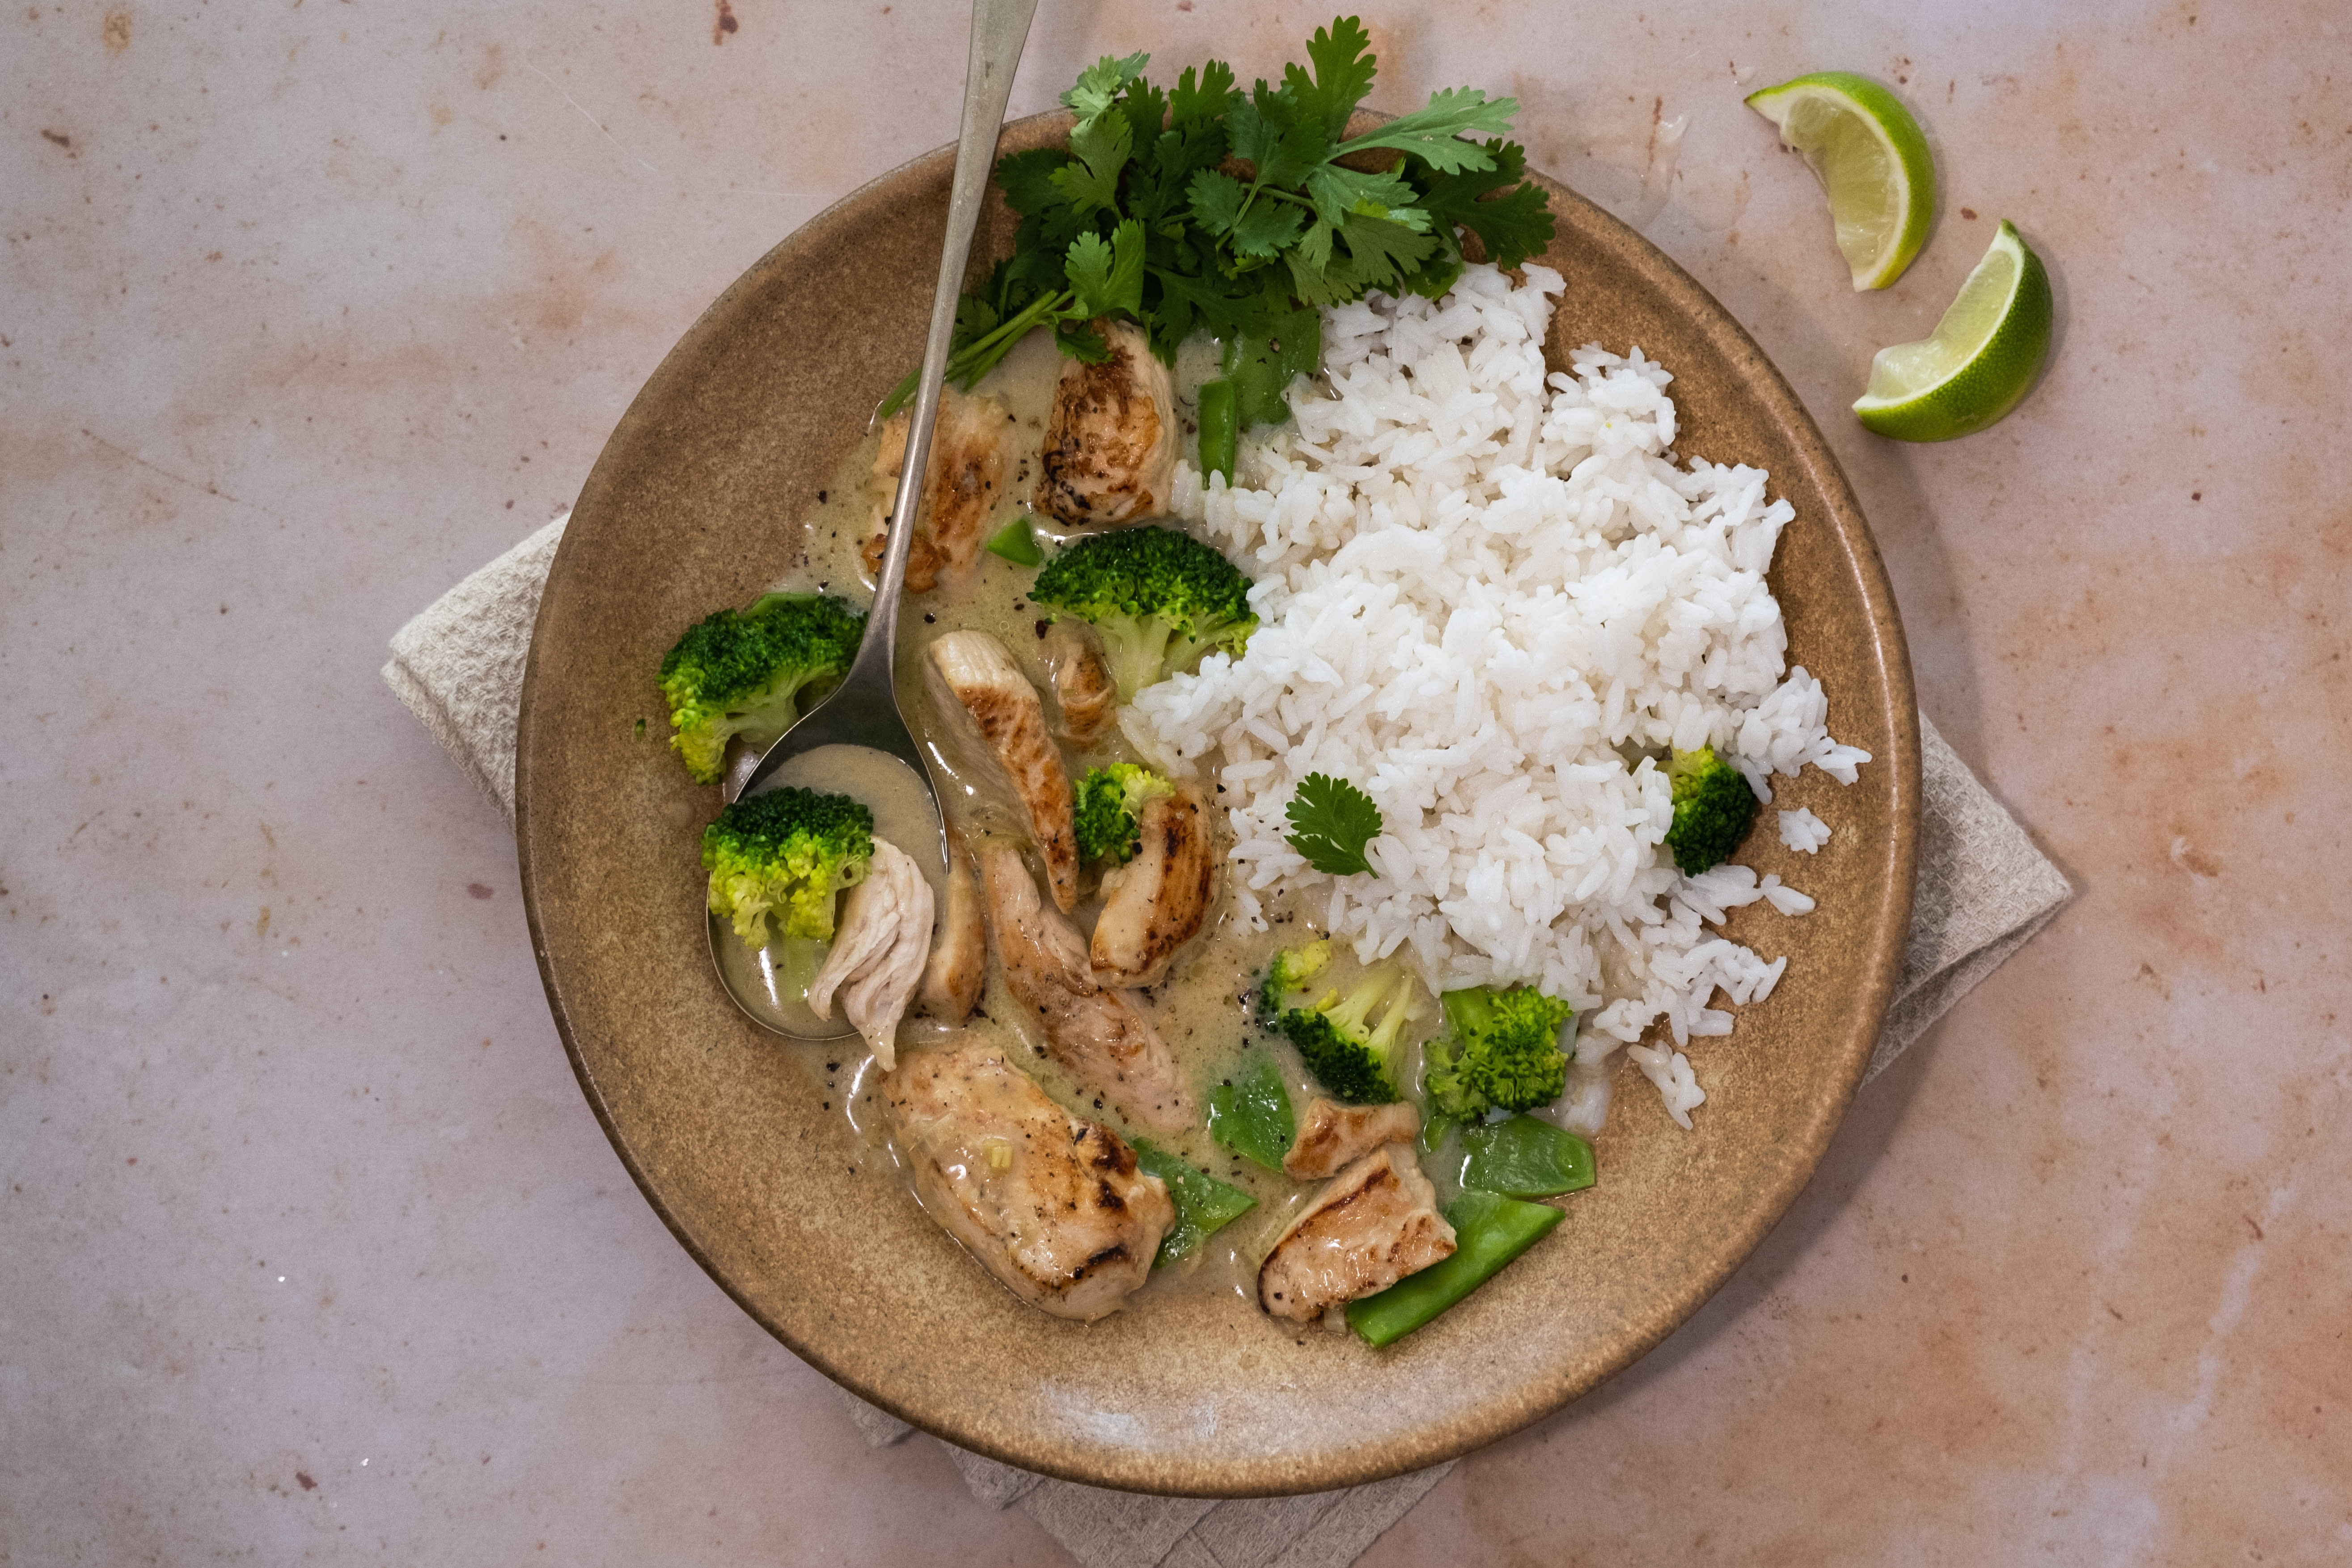 Aromatic Chicken and Lemongrass Stir-fry with Coconut Broth and Rice